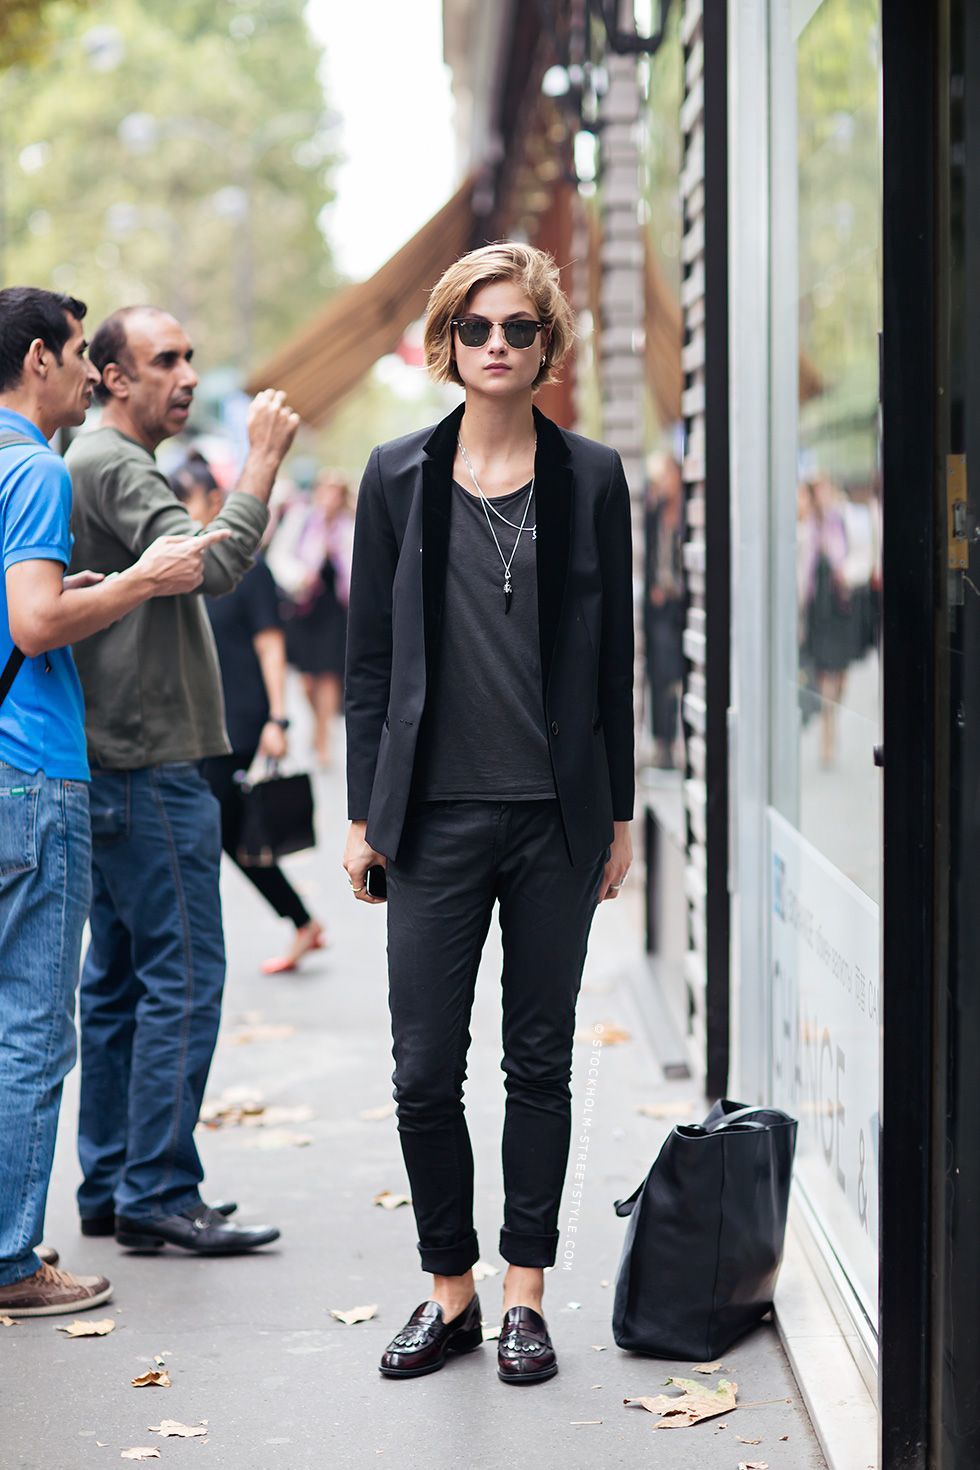 Street style in black abyourbags all black outfits